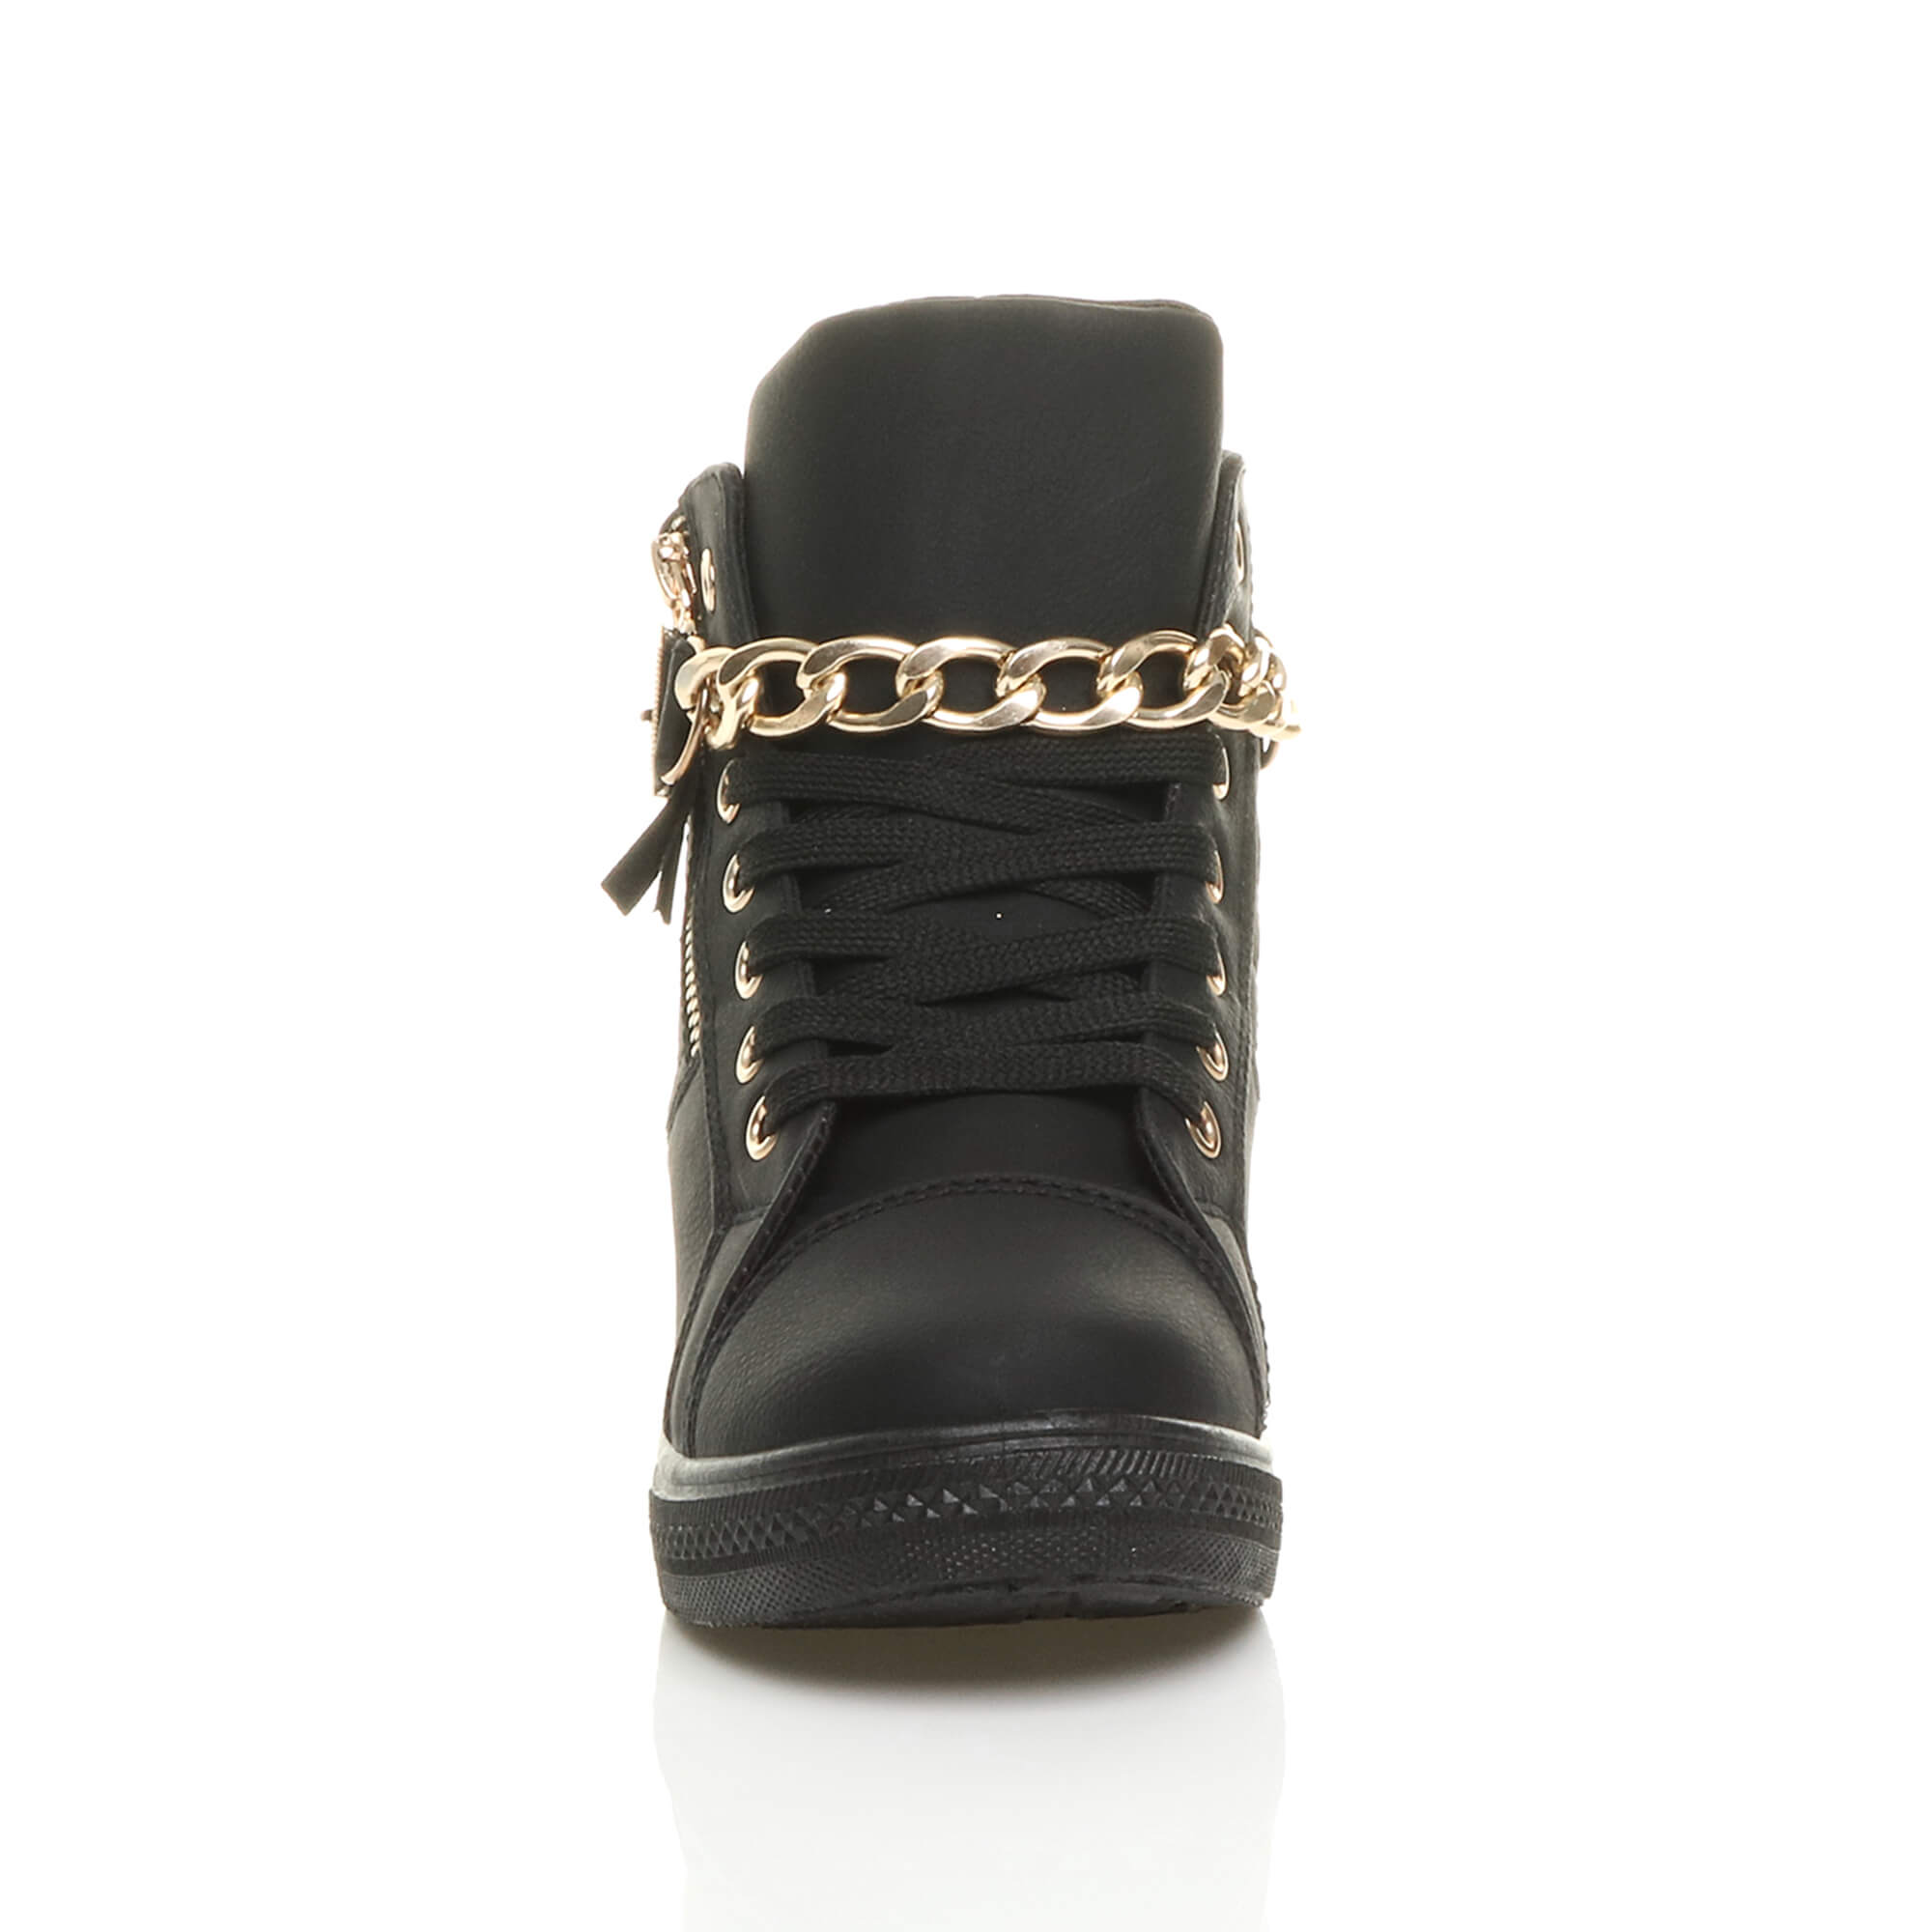 WOMENS-LADIES-MID-HEEL-WEDGE-PLATFORM-LACE-UP-HIGH-TOP-ANKLE-TRAINERS-BOOTS-SIZE